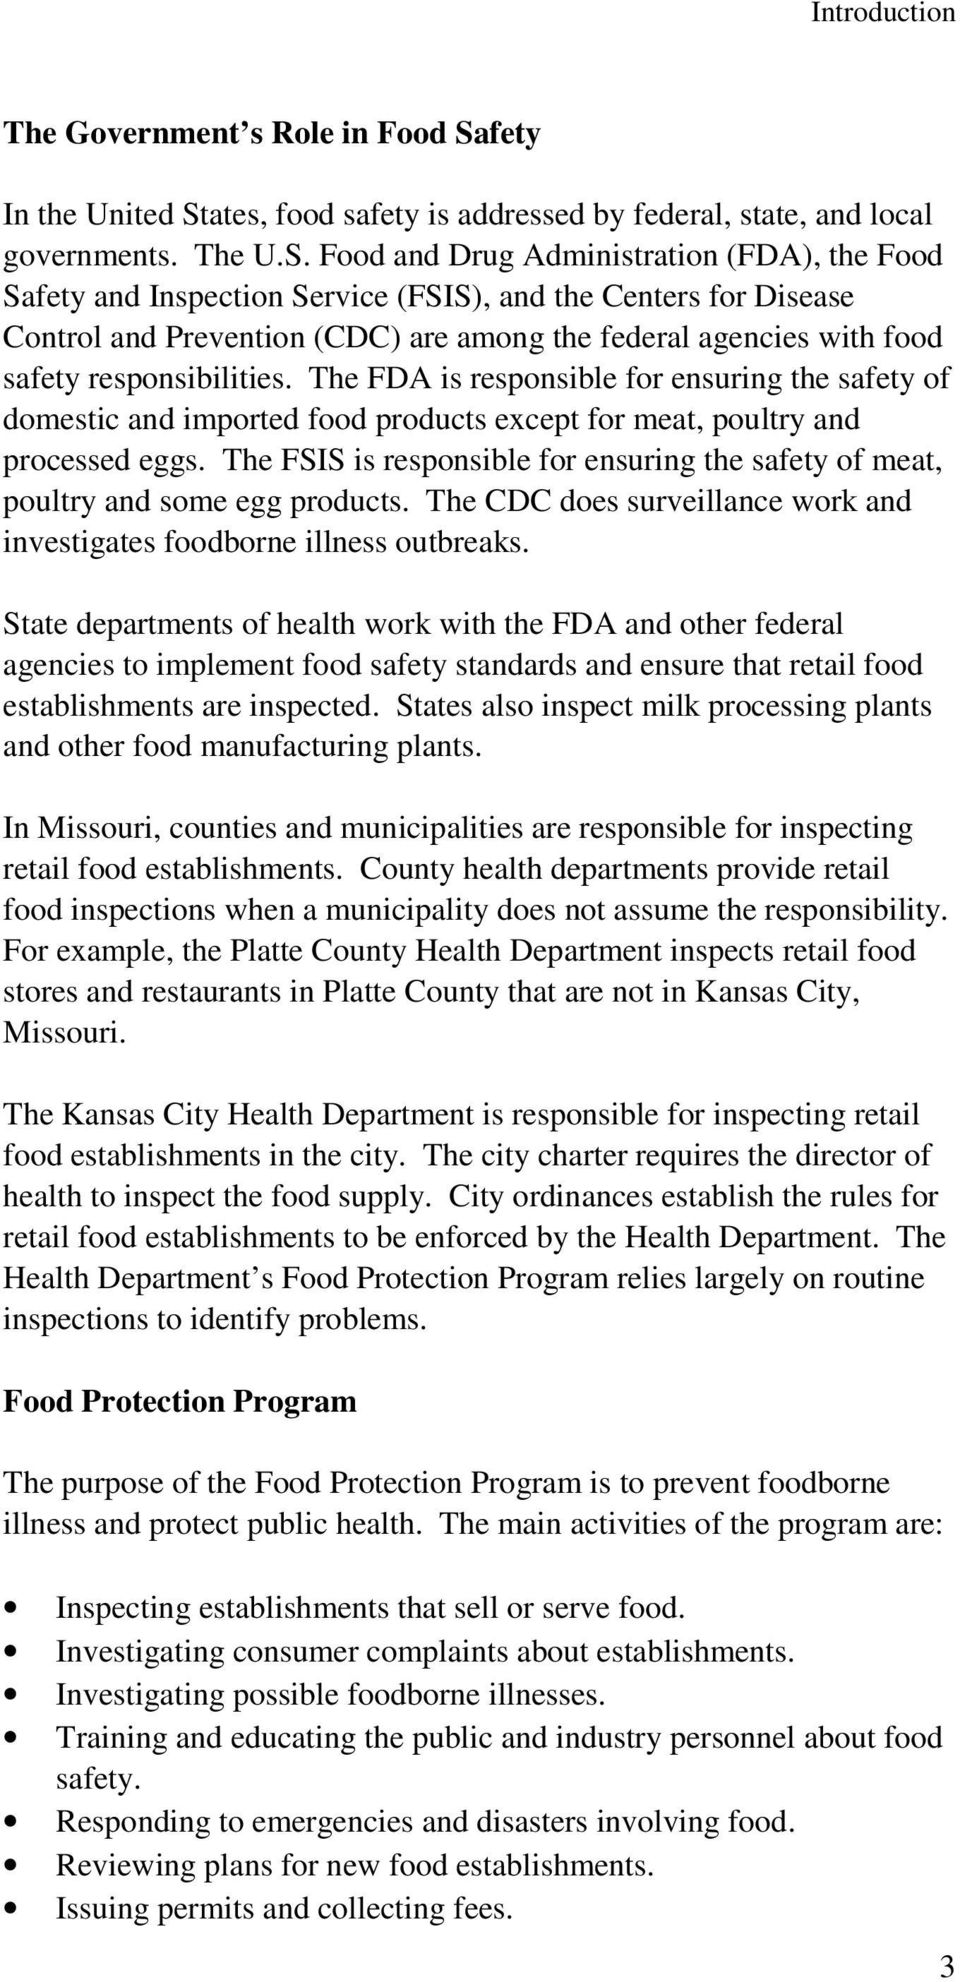 ates, food safety is addressed by federal, state, and local governments. The U.S.